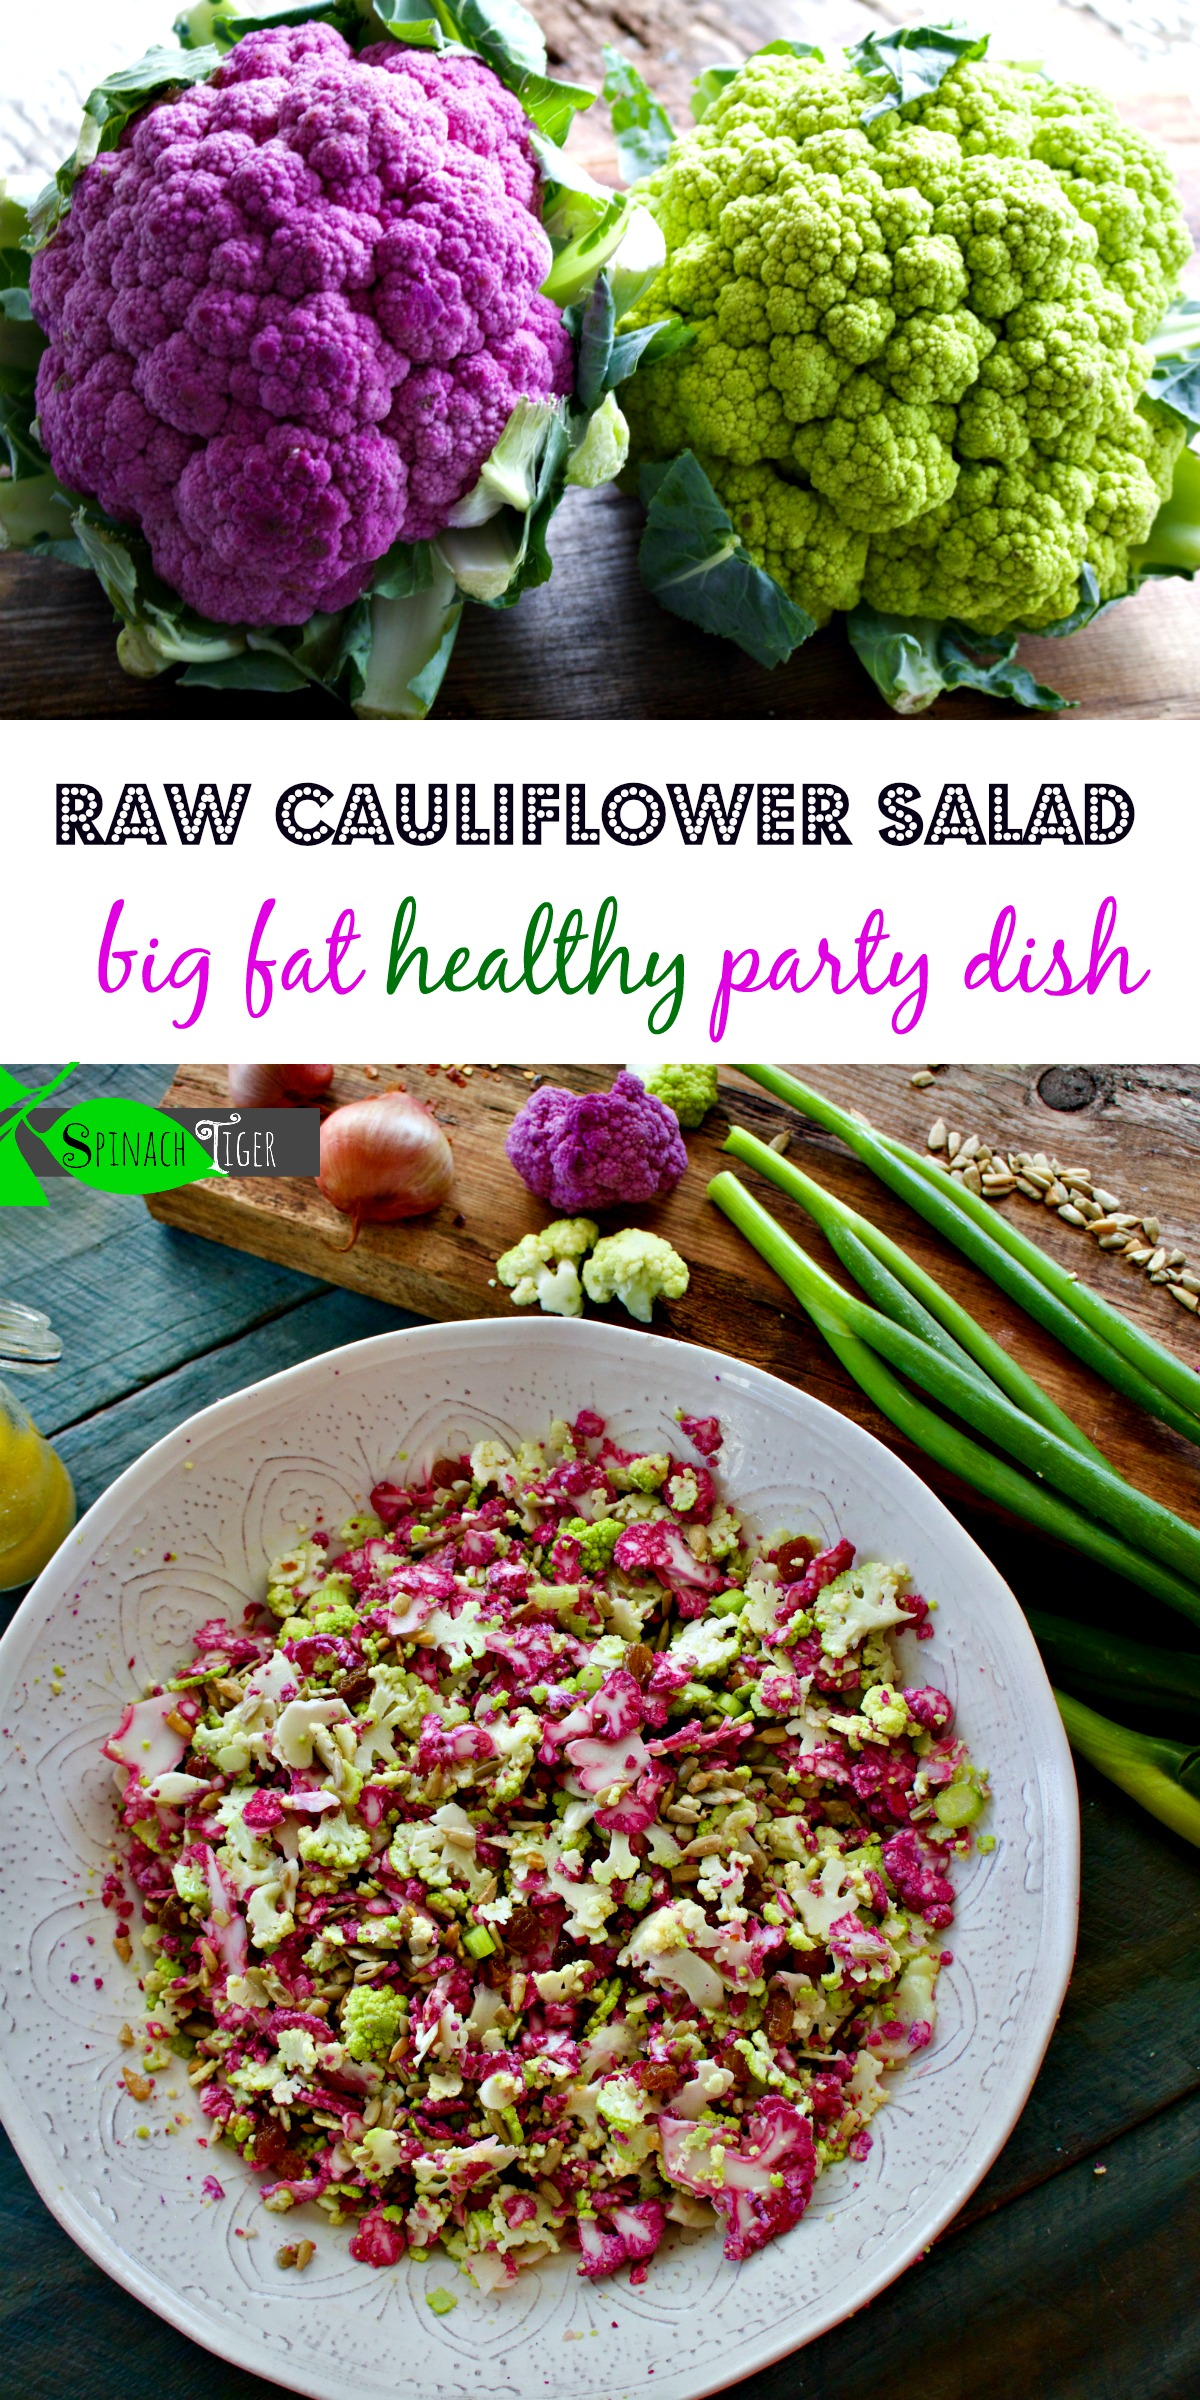 Colorful Purple Cauliflower Salad, Walnut Vinaigrette from Spinach Tiger